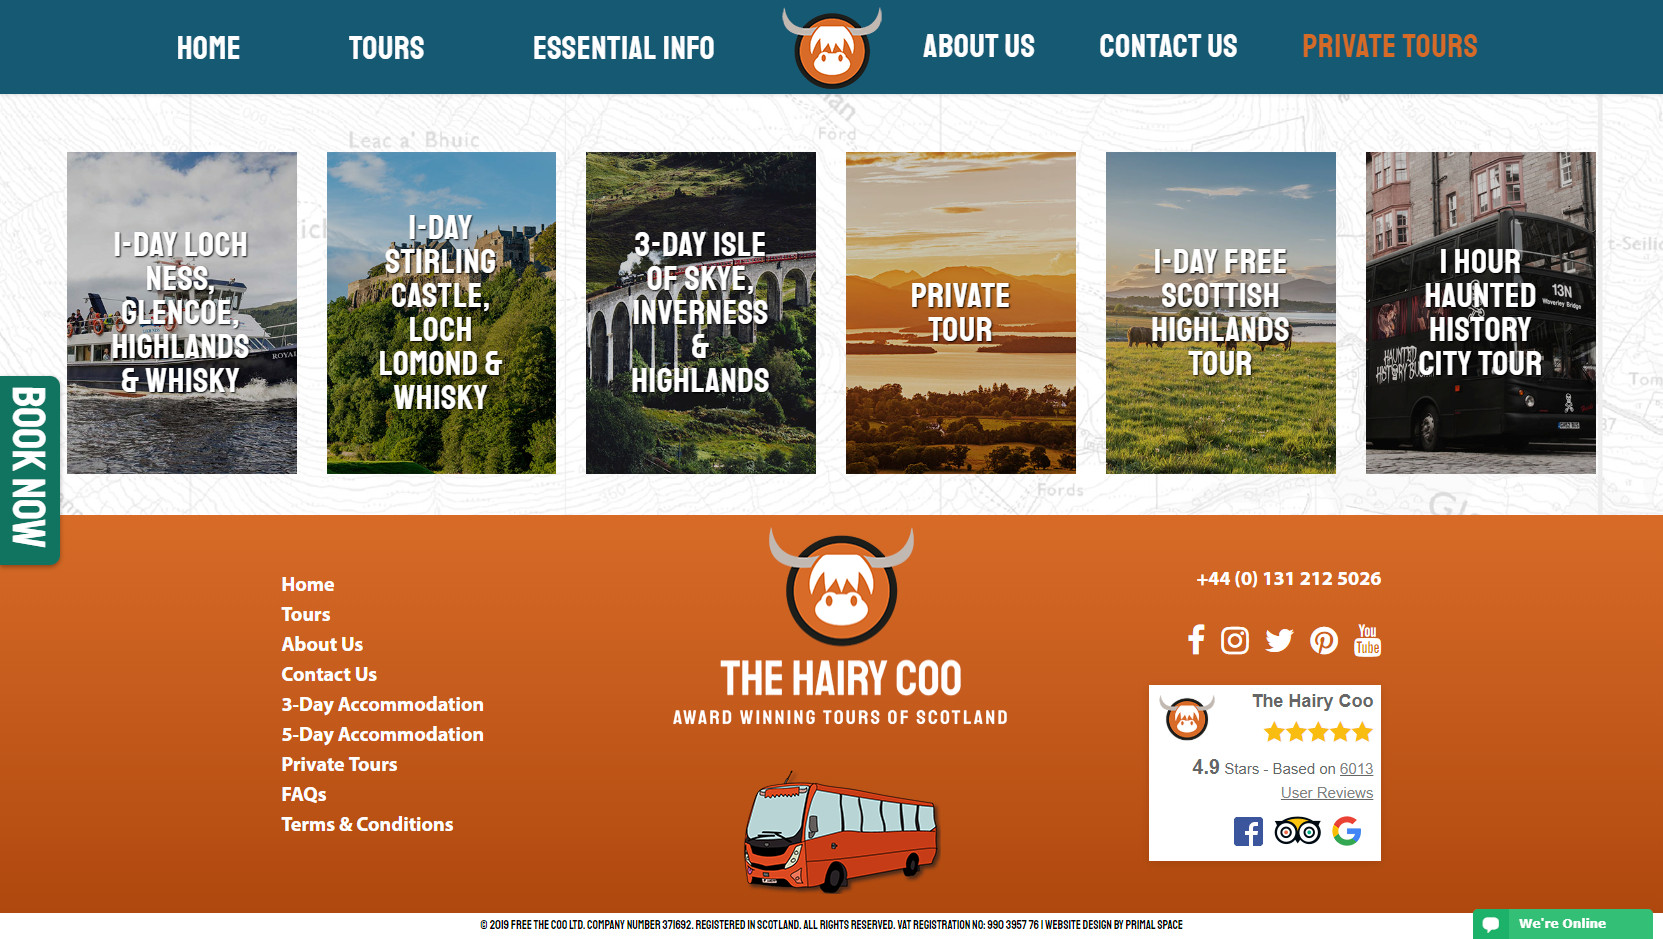 The Hairy Coo Website Design